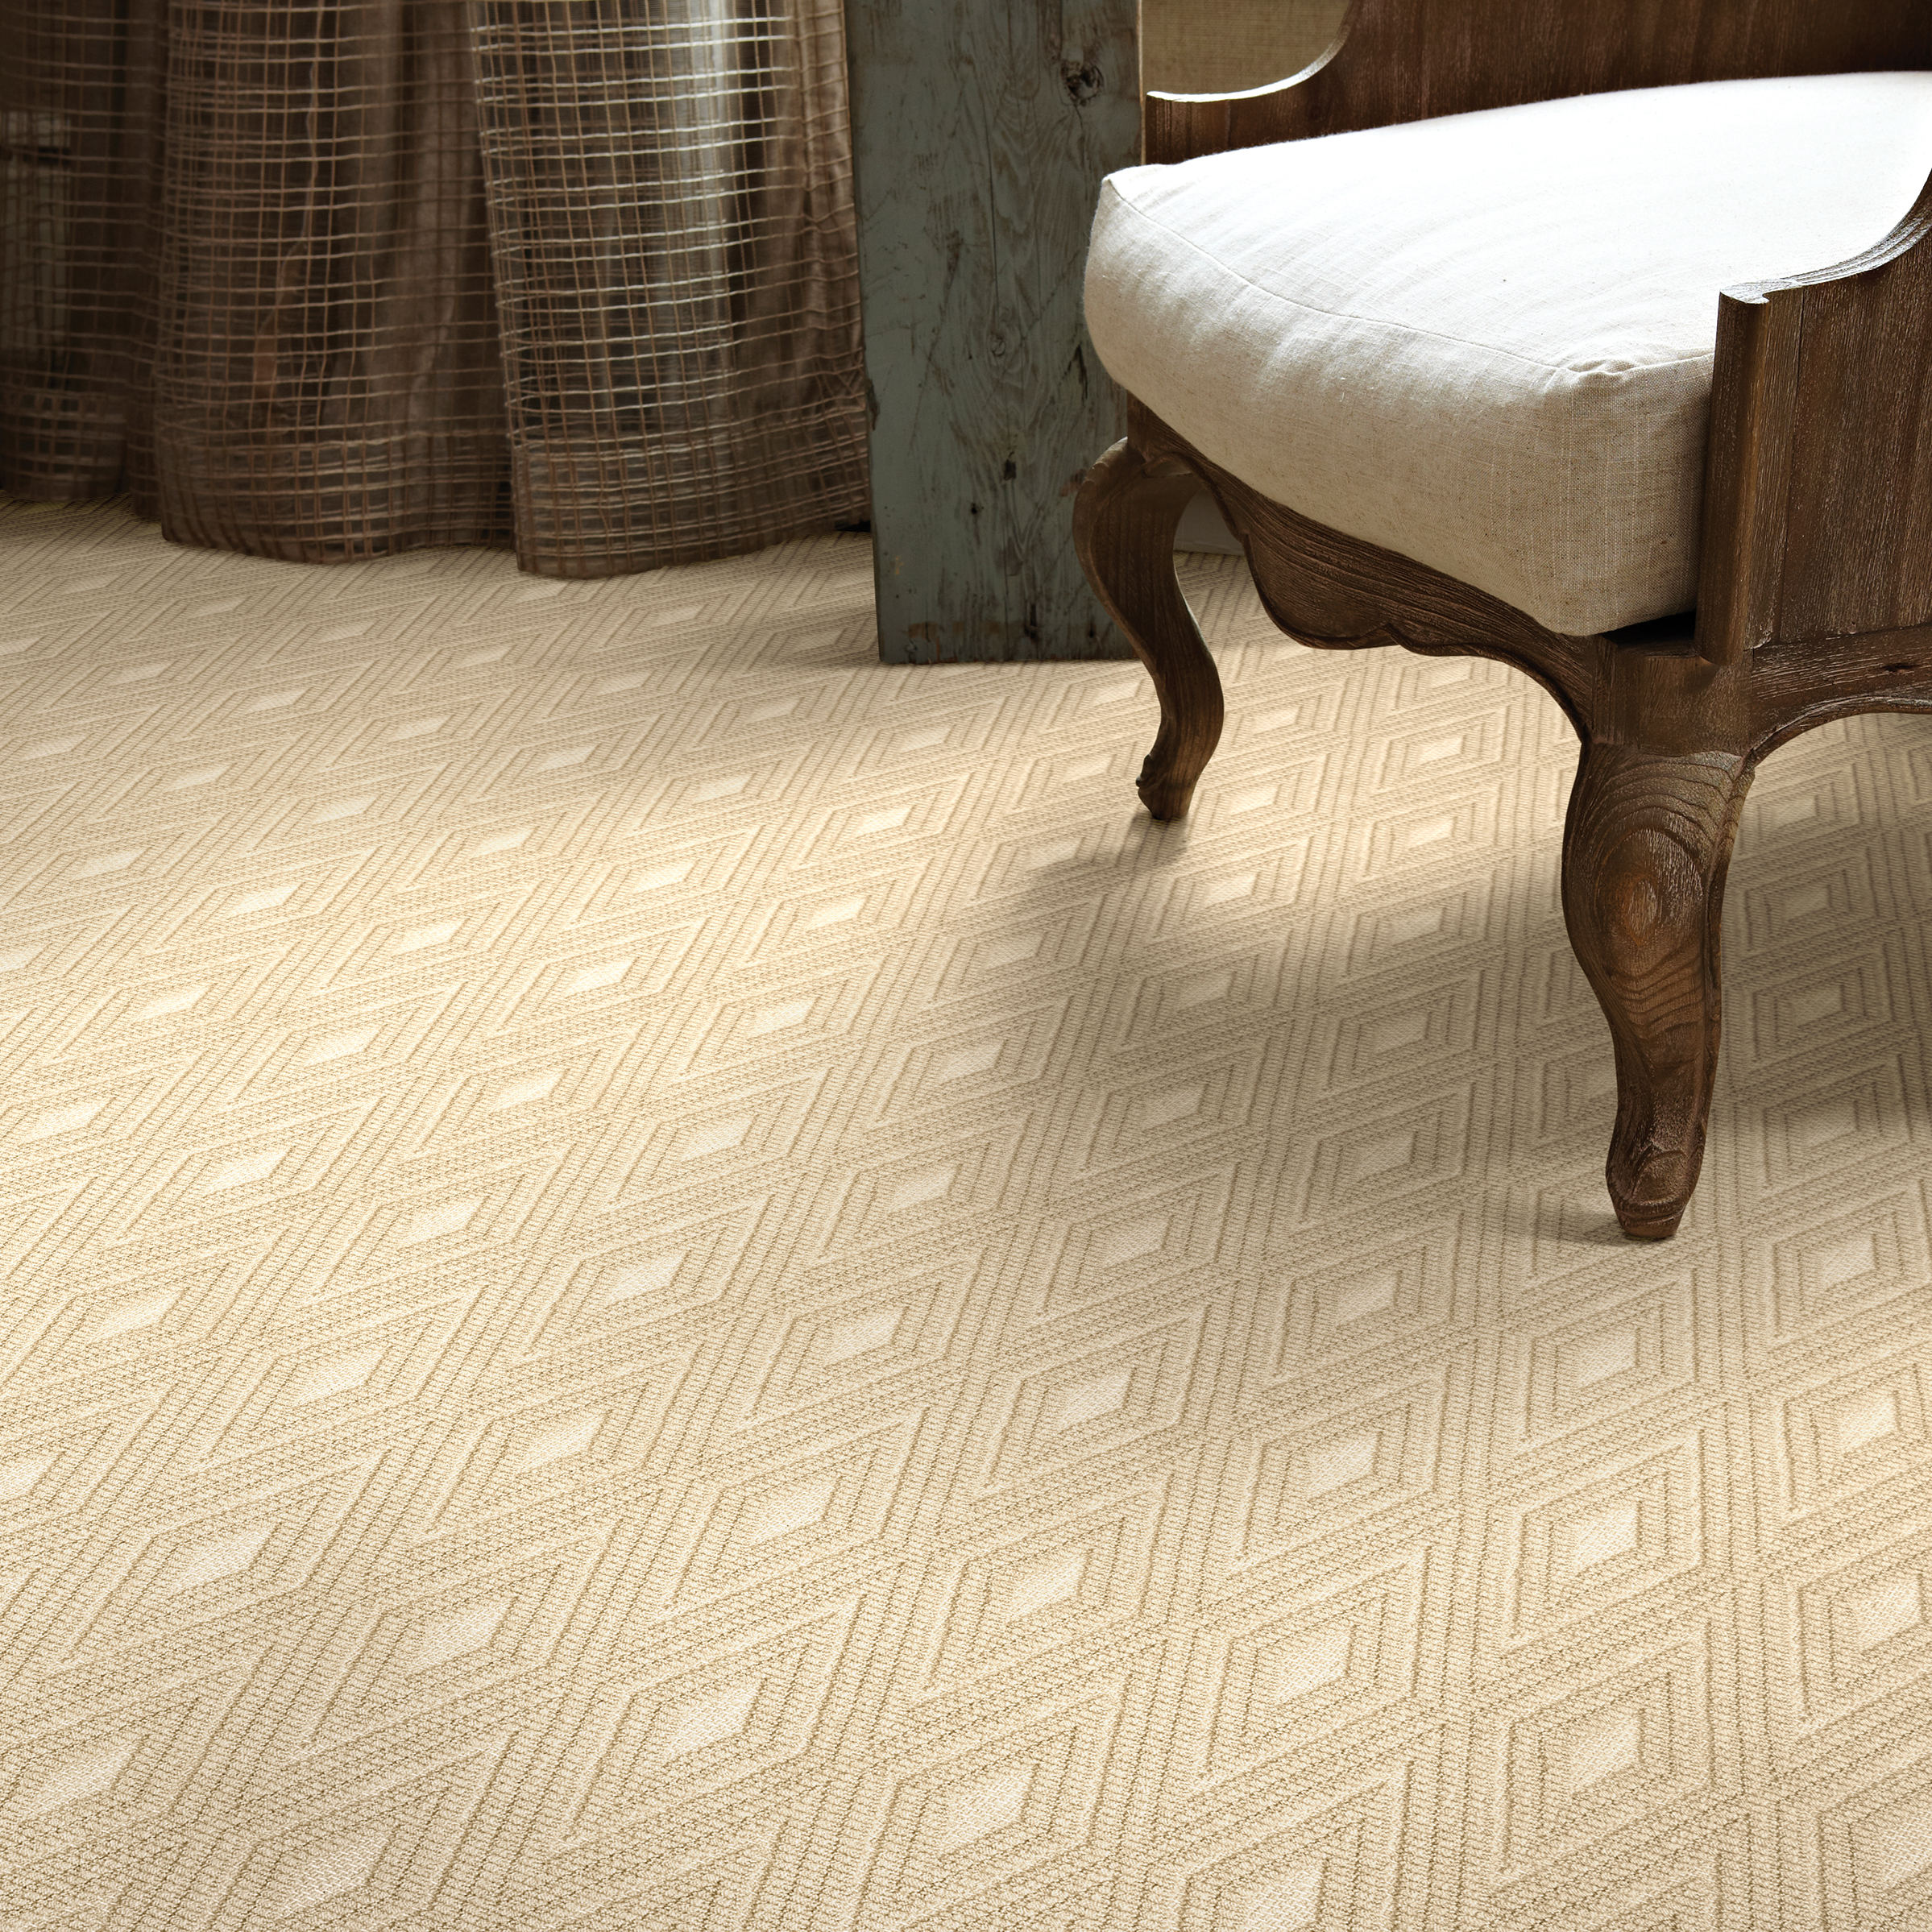 When choosing a carpet, the first step is to select the texture. A plush carpet might feel great but if you will be bothered by vacuum lines and footprints, then a shorter carpet is your best bet.